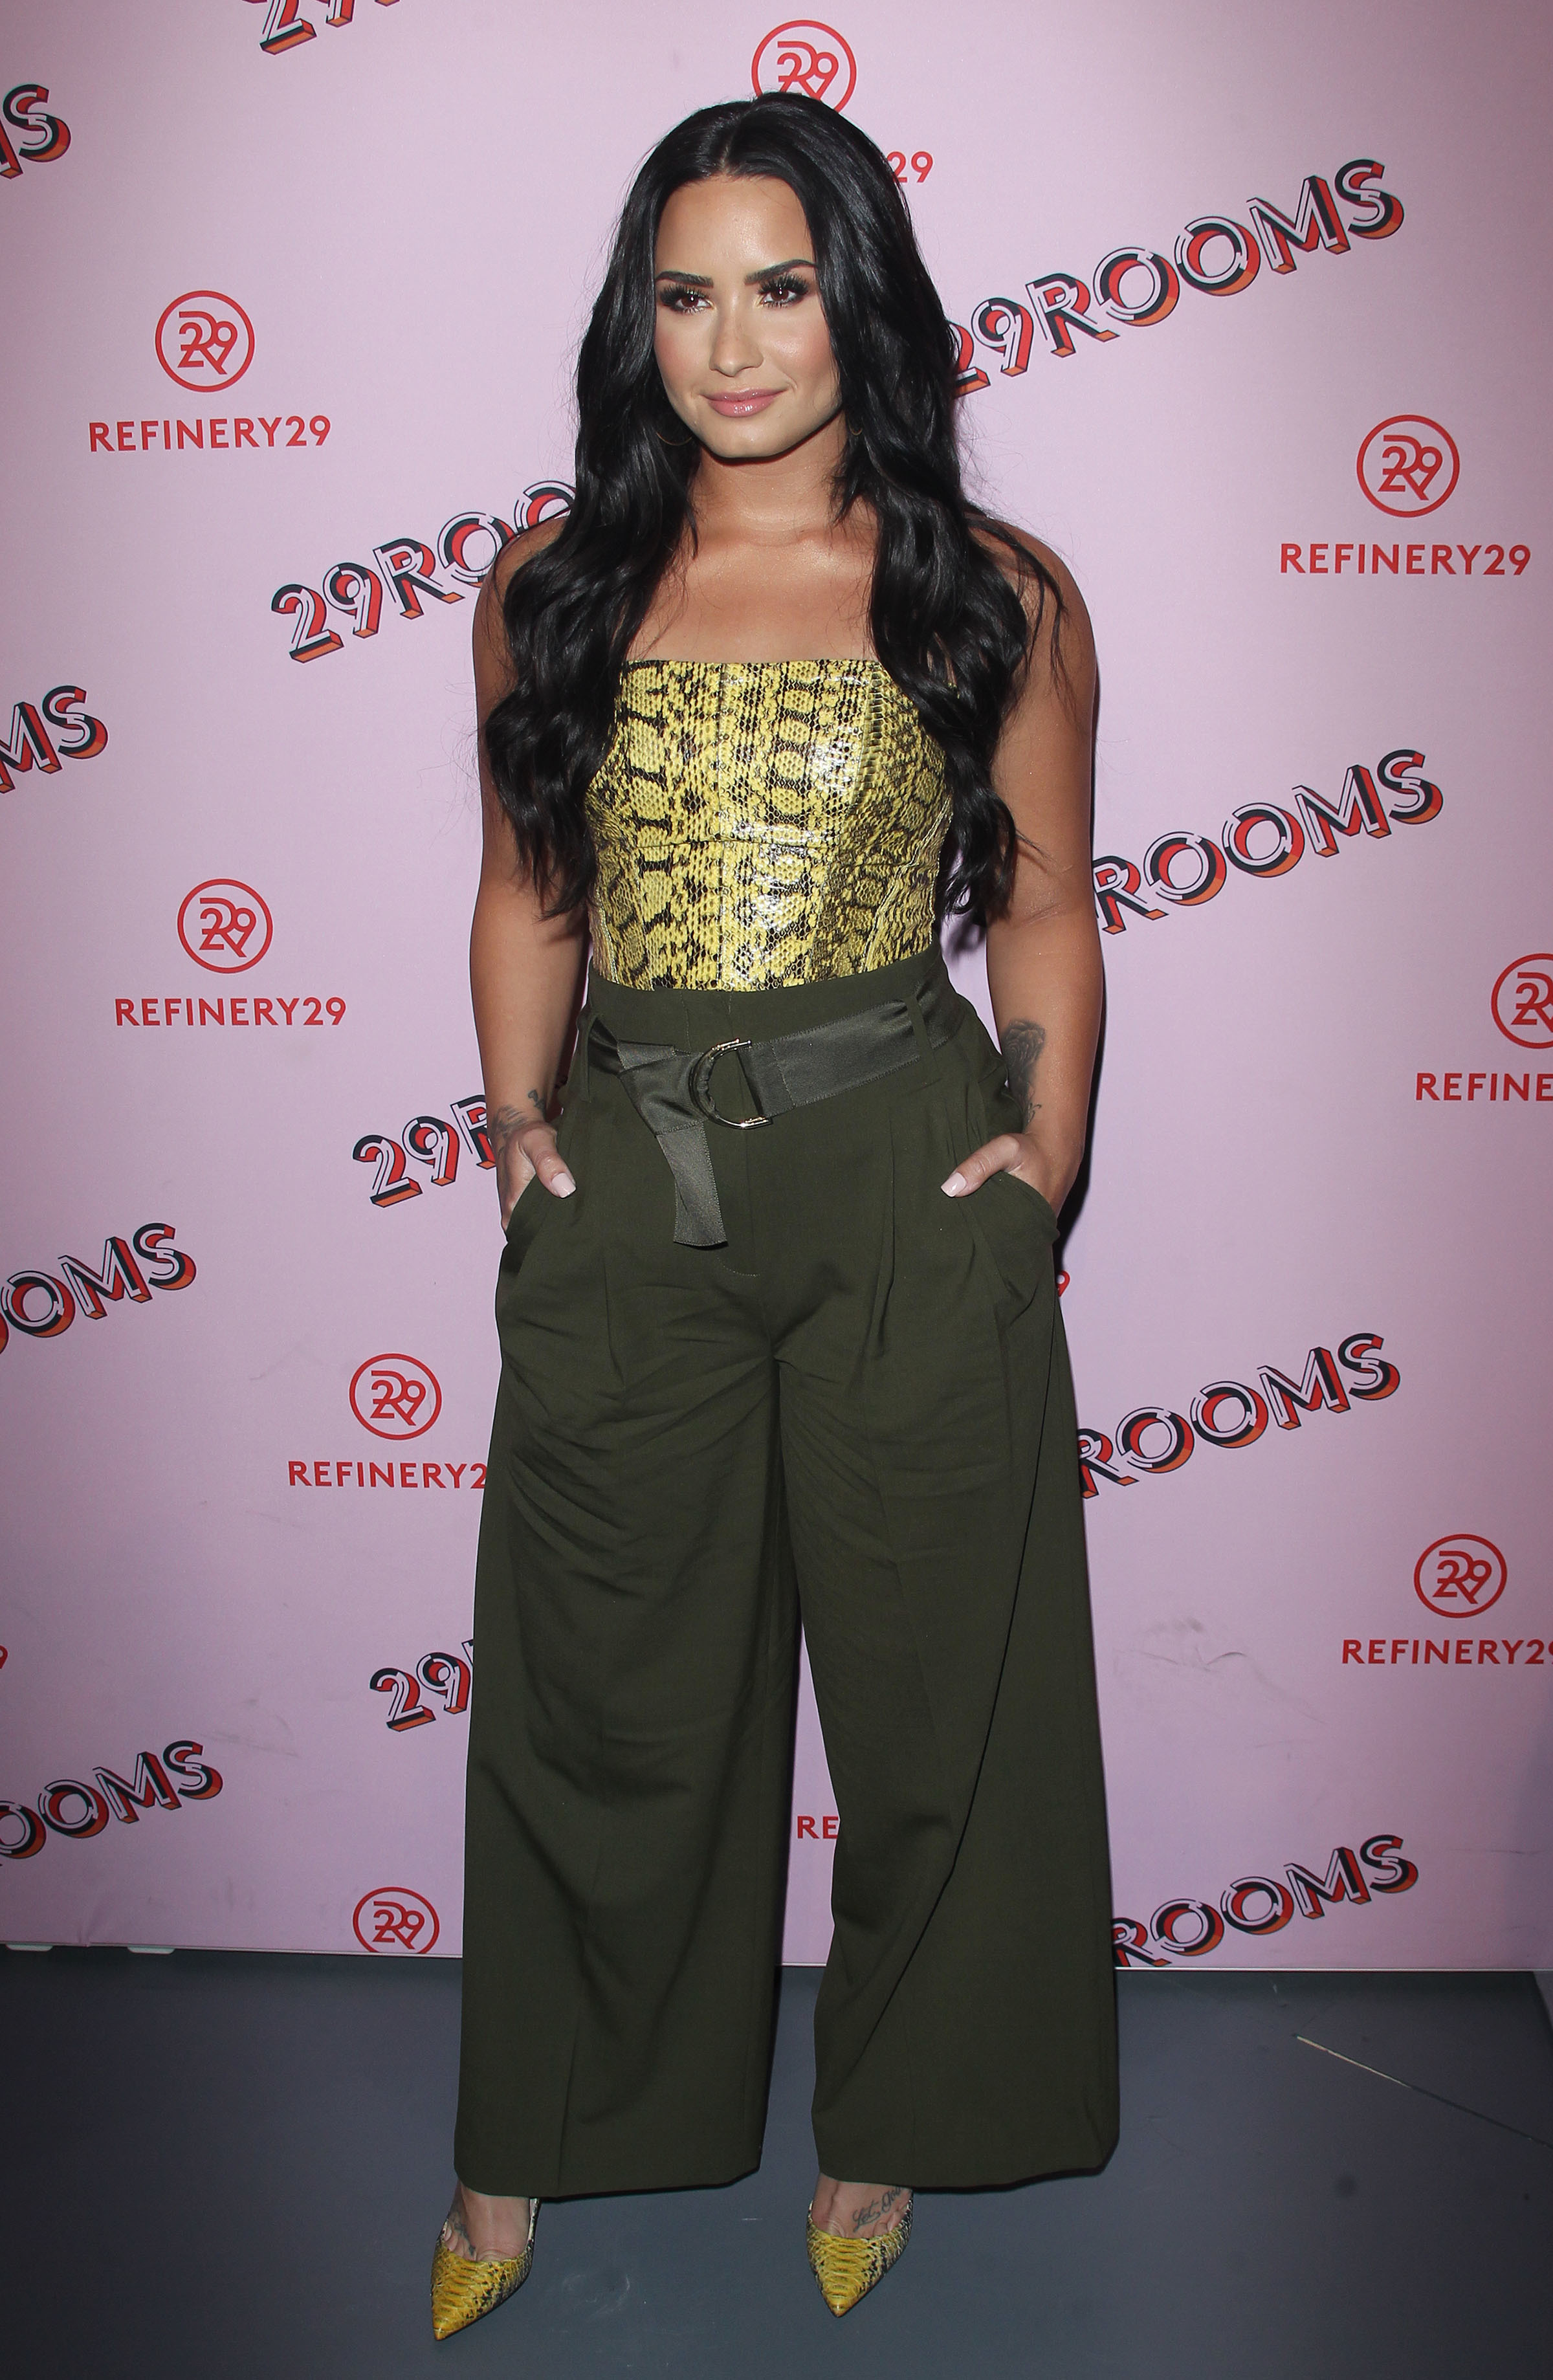 Demi Lovato attends the 29Rooms LA event in Los Angeles  on Dec. 6, 2017.